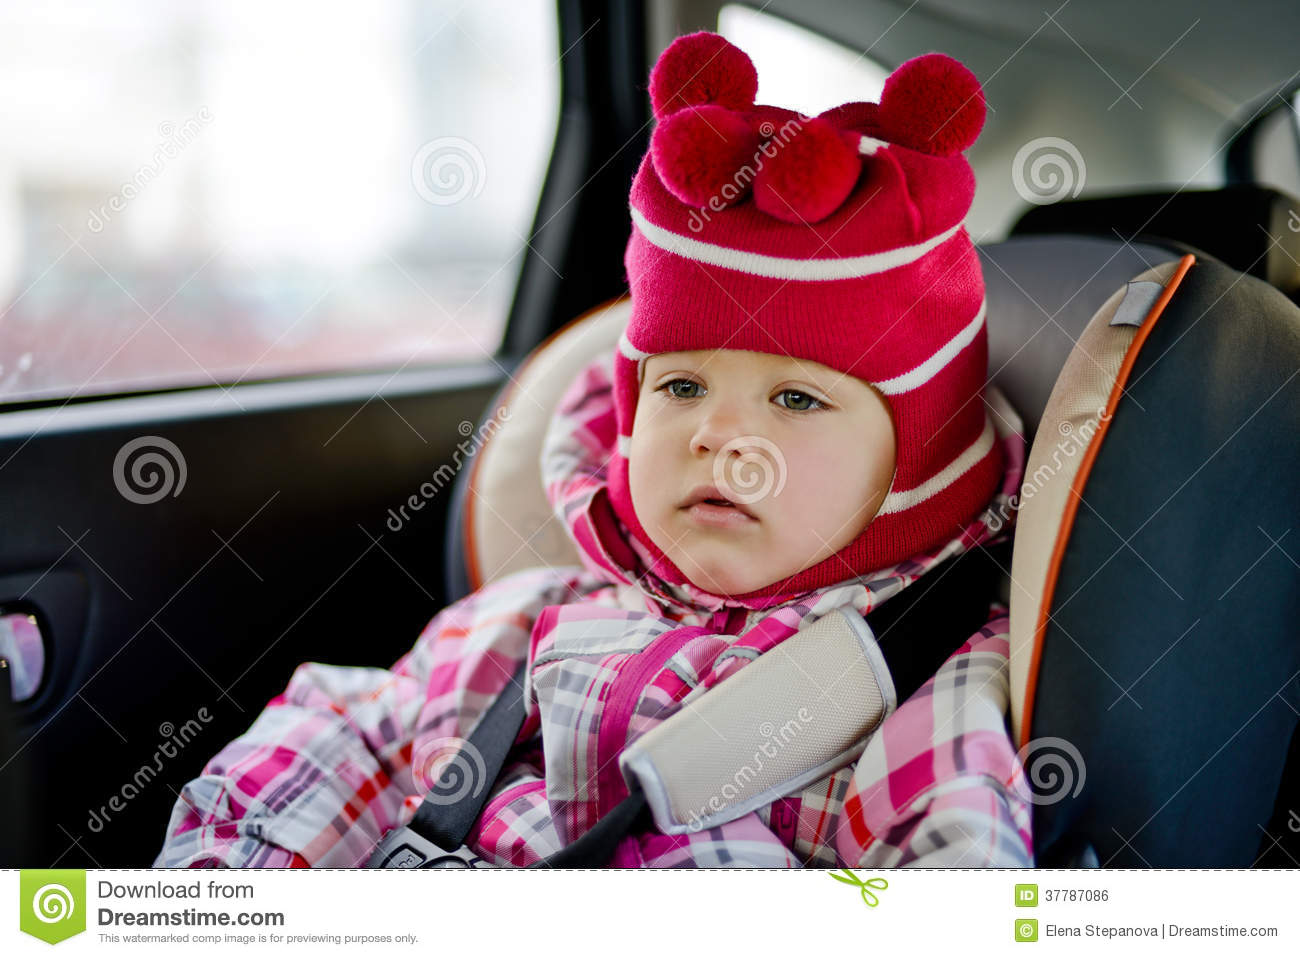 Baby Girl Infant Car Seats: Baby Girl In Car Seat Royalty-Free Stock Image